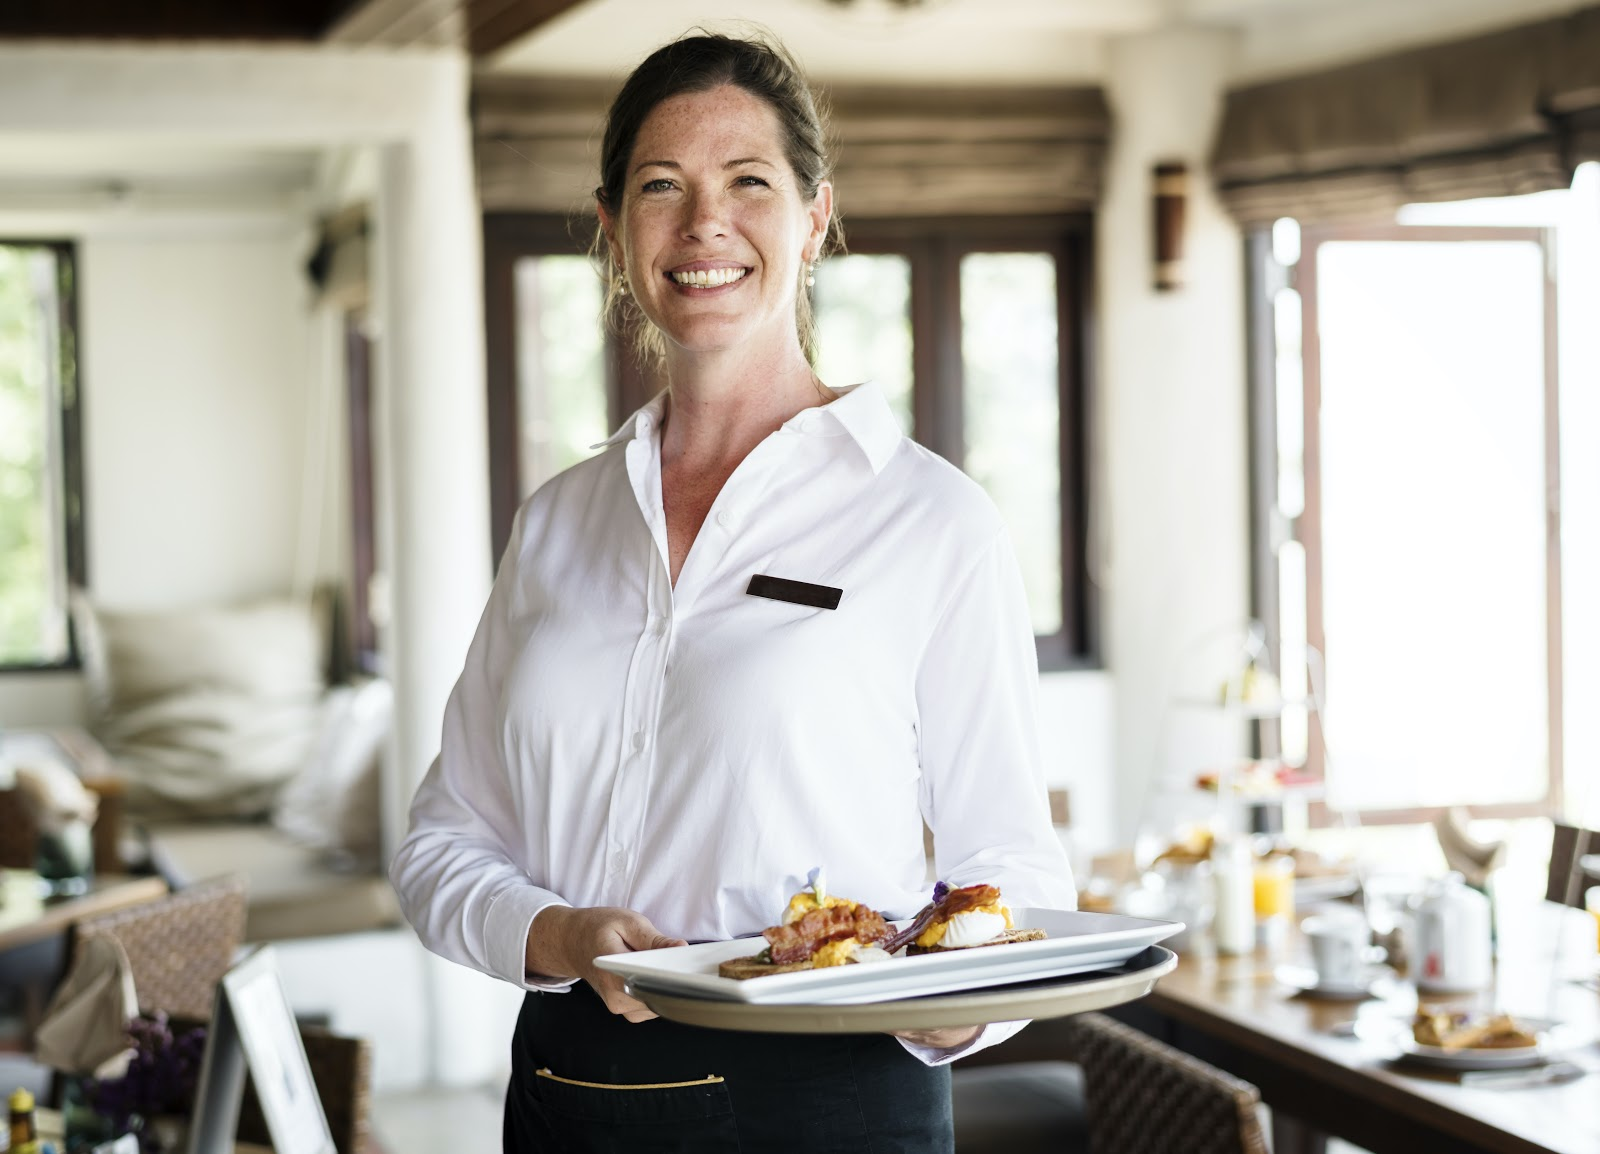 Internal promotion: Server smiles at camera while holding tray of food